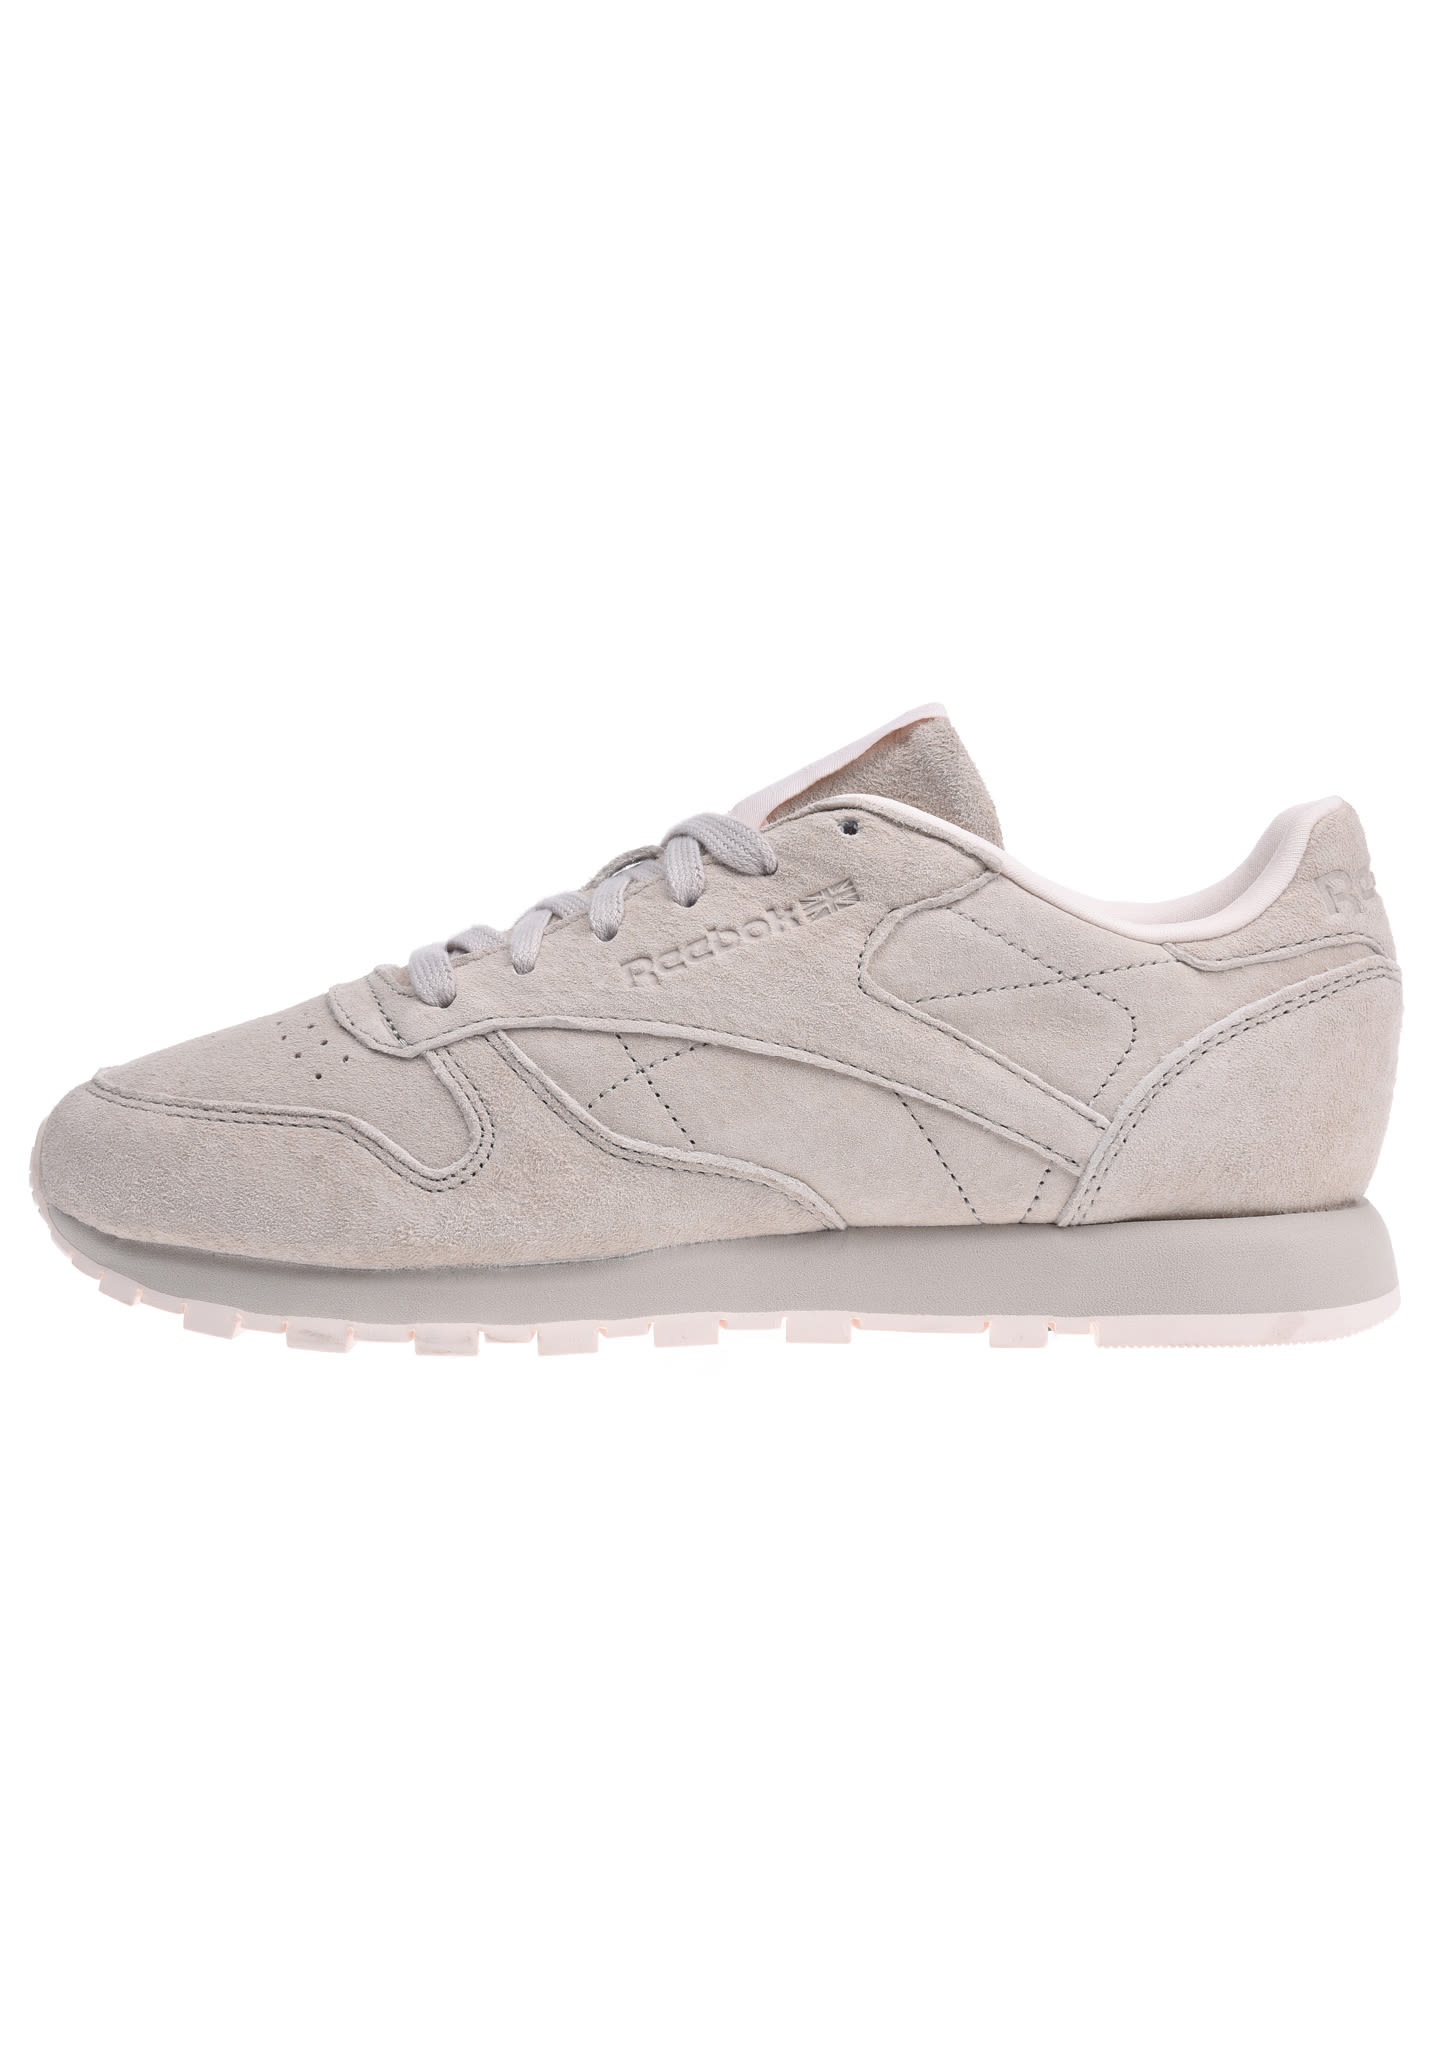 9a72afb4fdb Reebok Classic Lthr Tonal Nbk - Sneakers for Women - Grey - Planet Sports